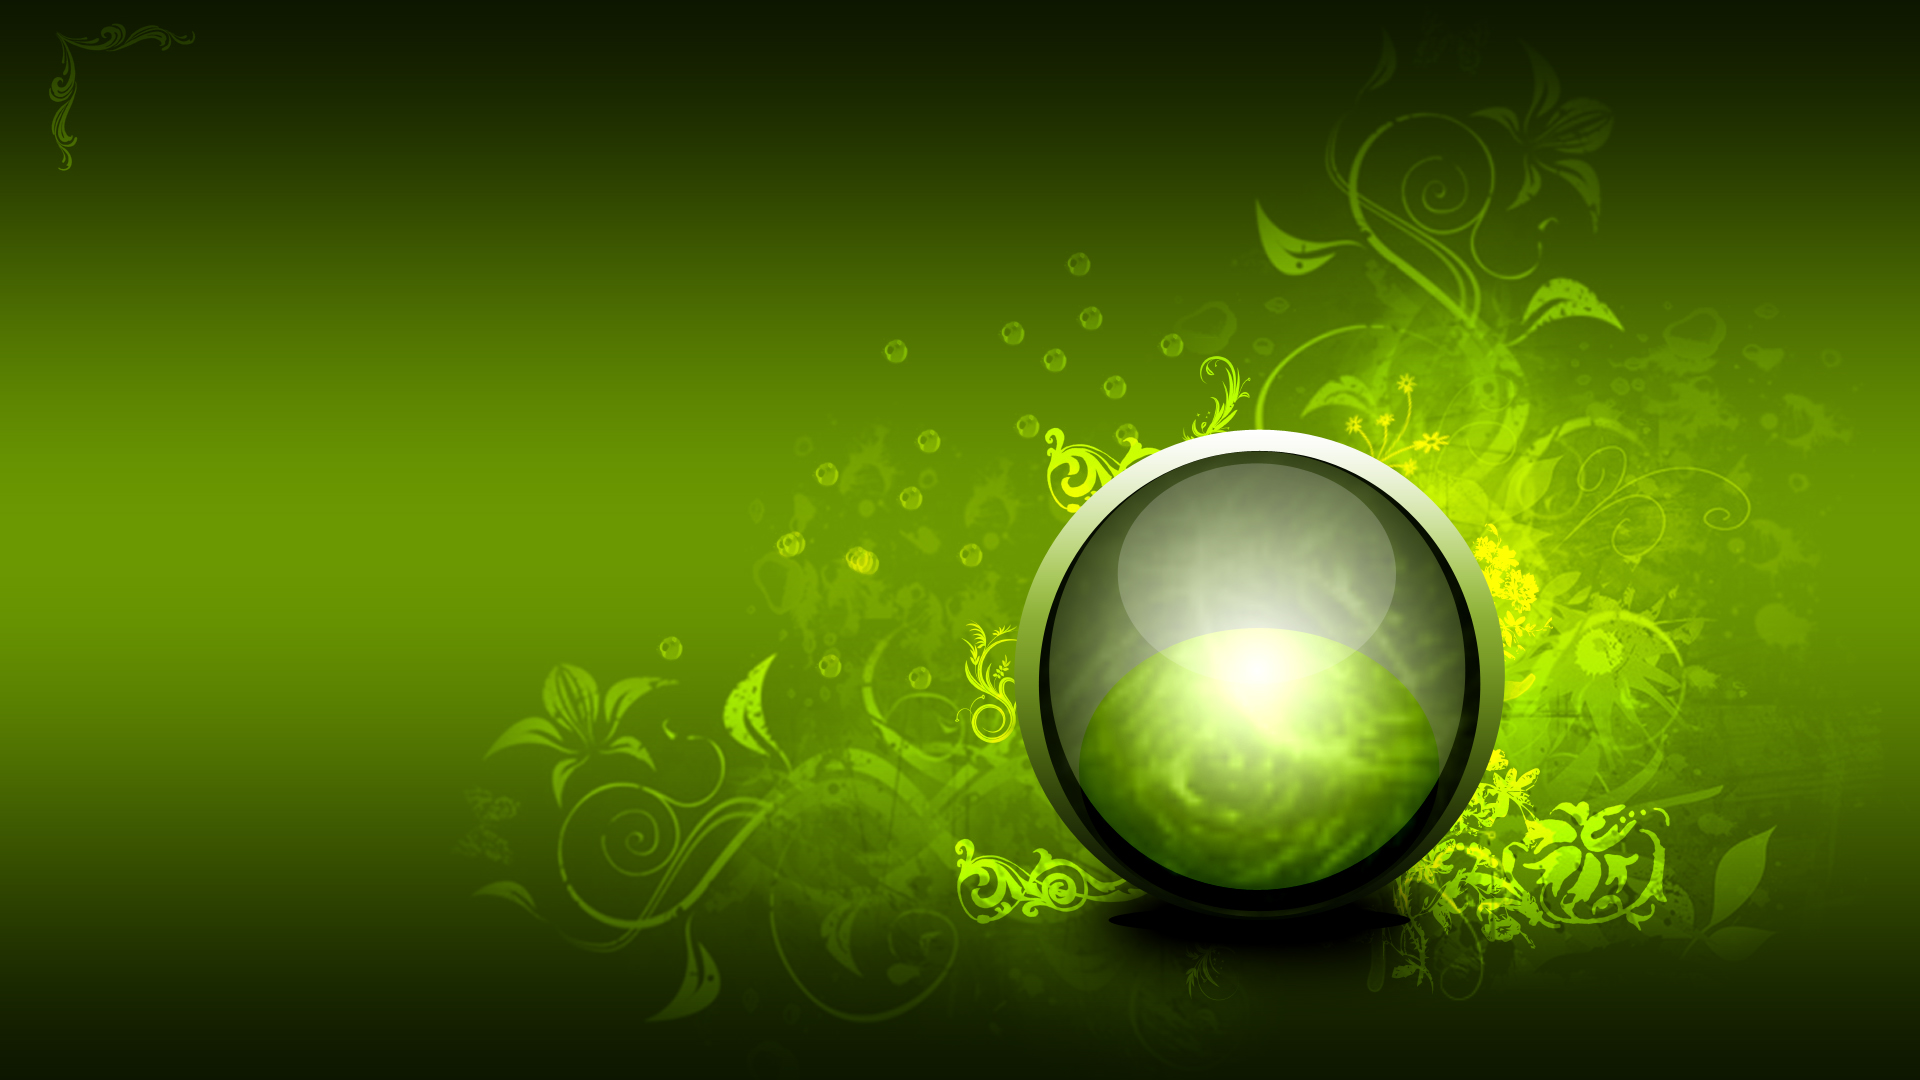 Green Abstract 1080p 1080p Wallpaper Hdtv #7903 Hd ...